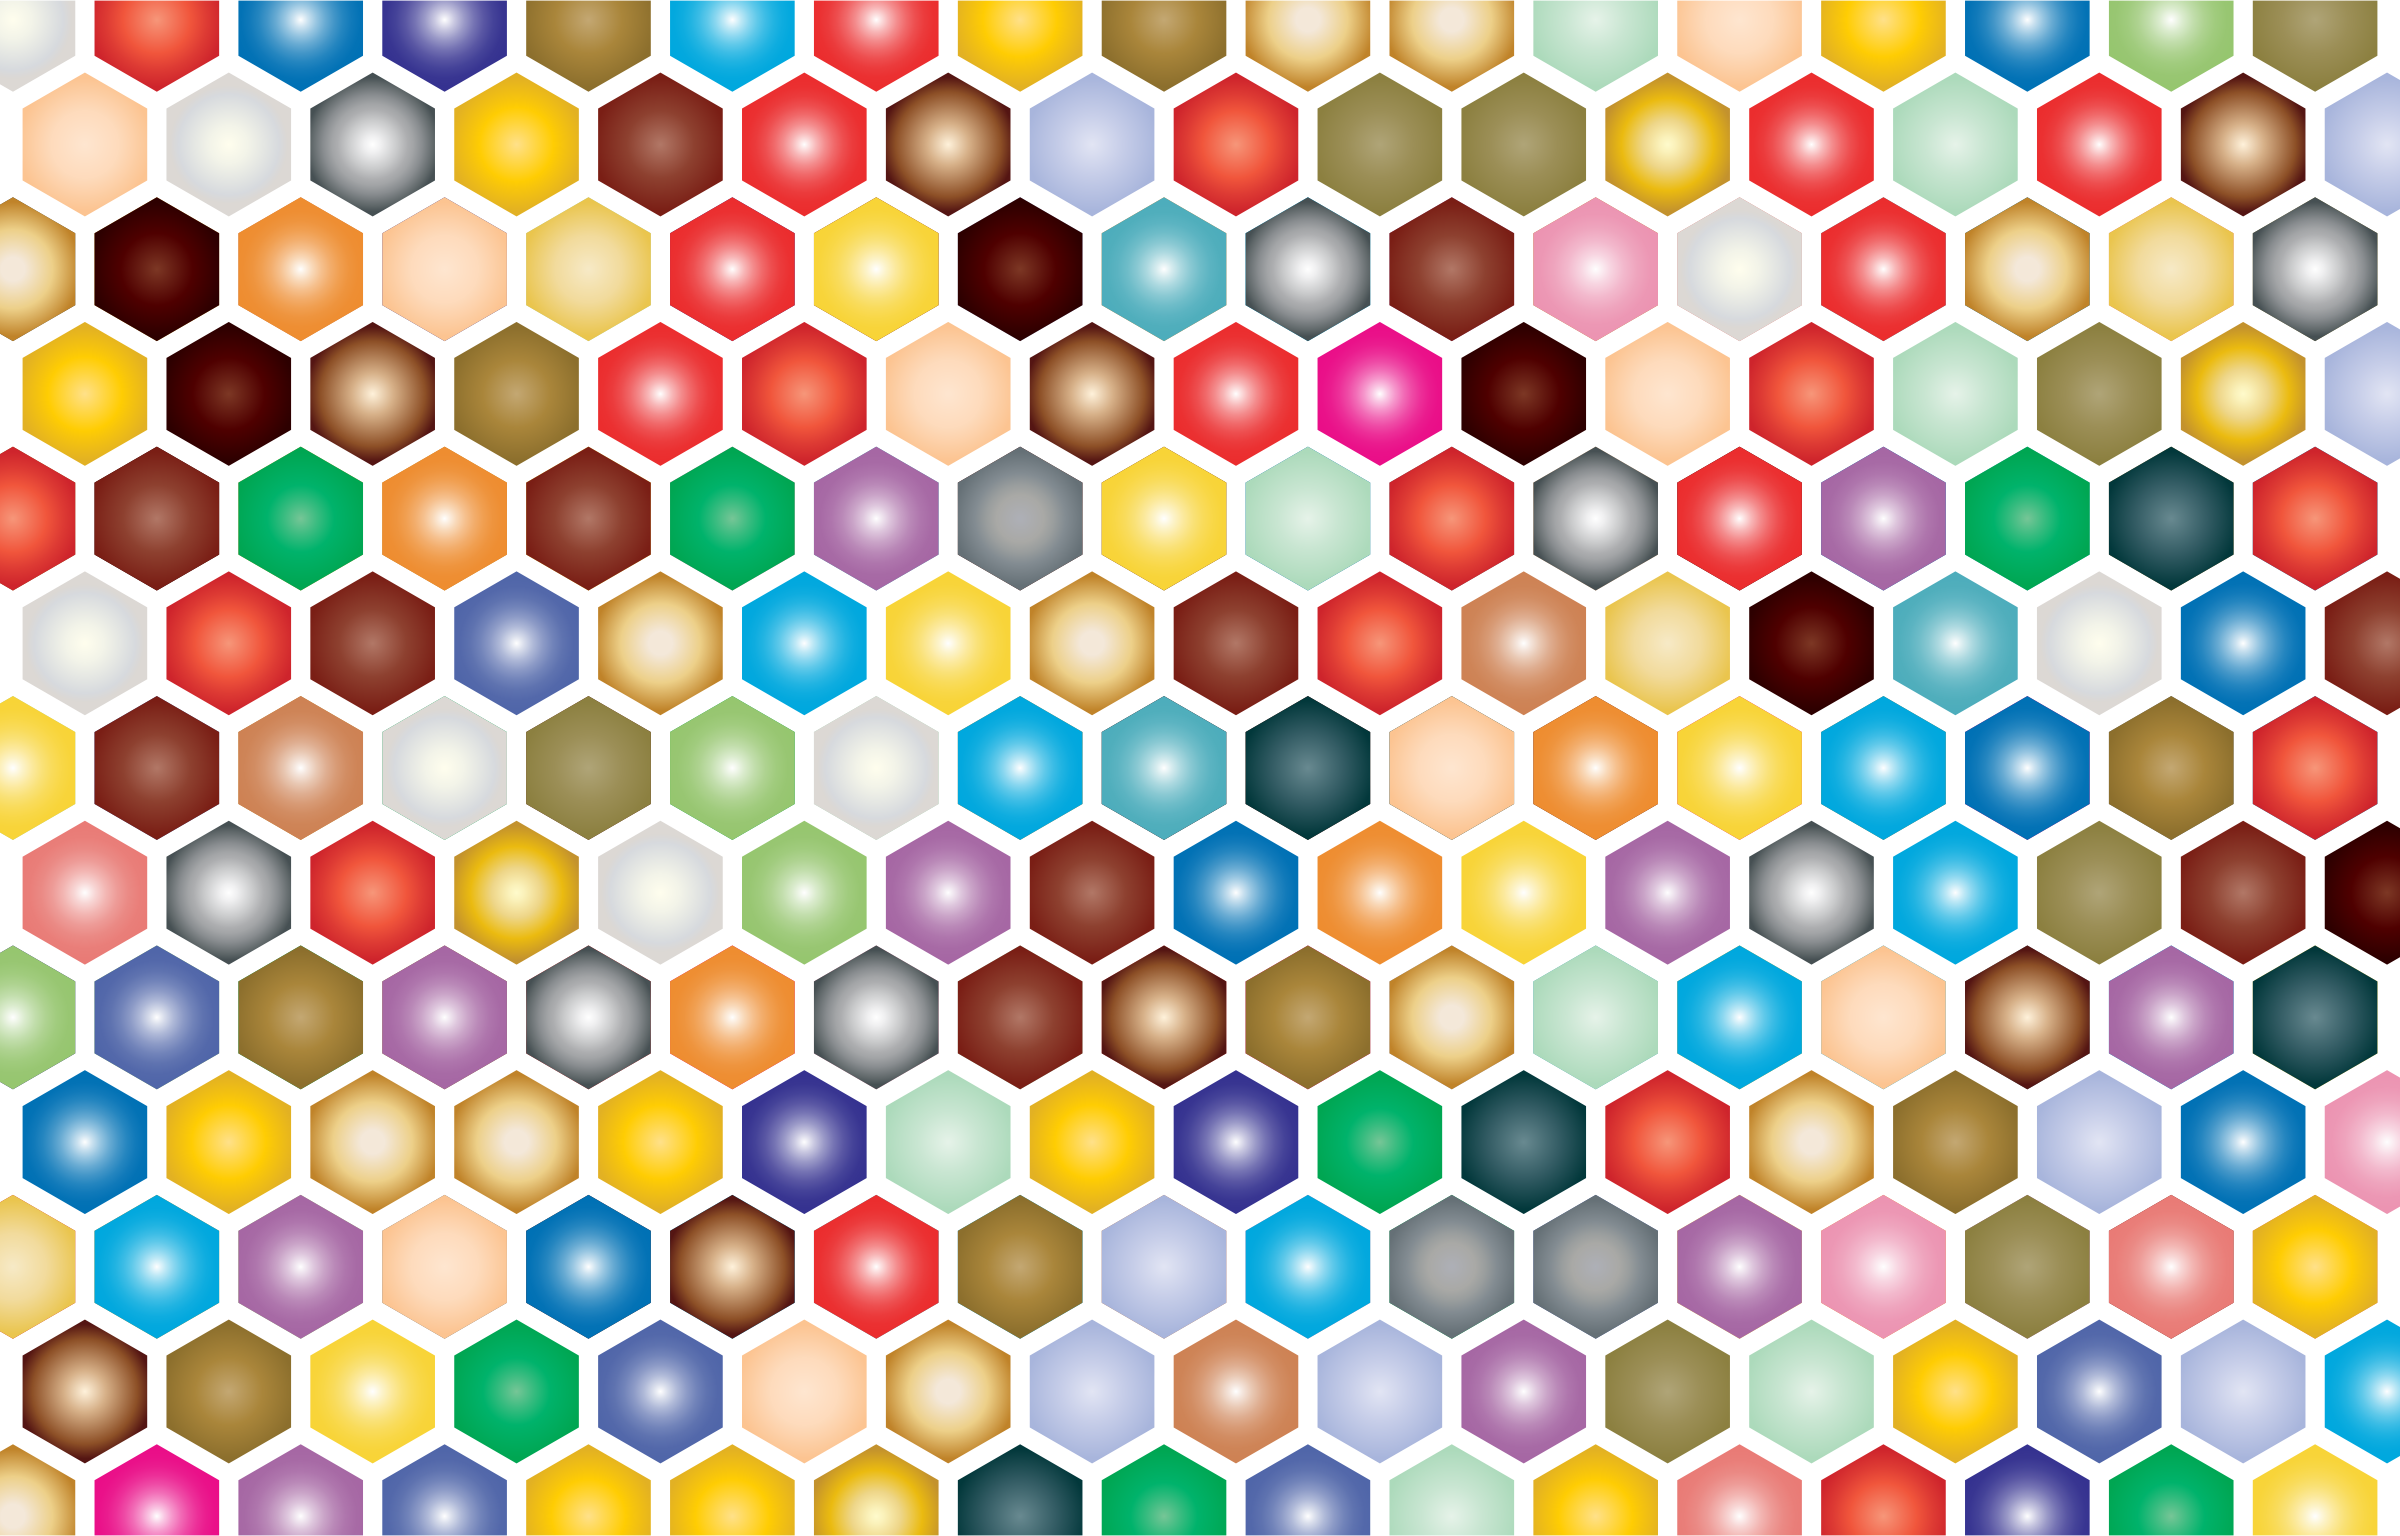 Colorful Hex Grid Pattern by GDJ